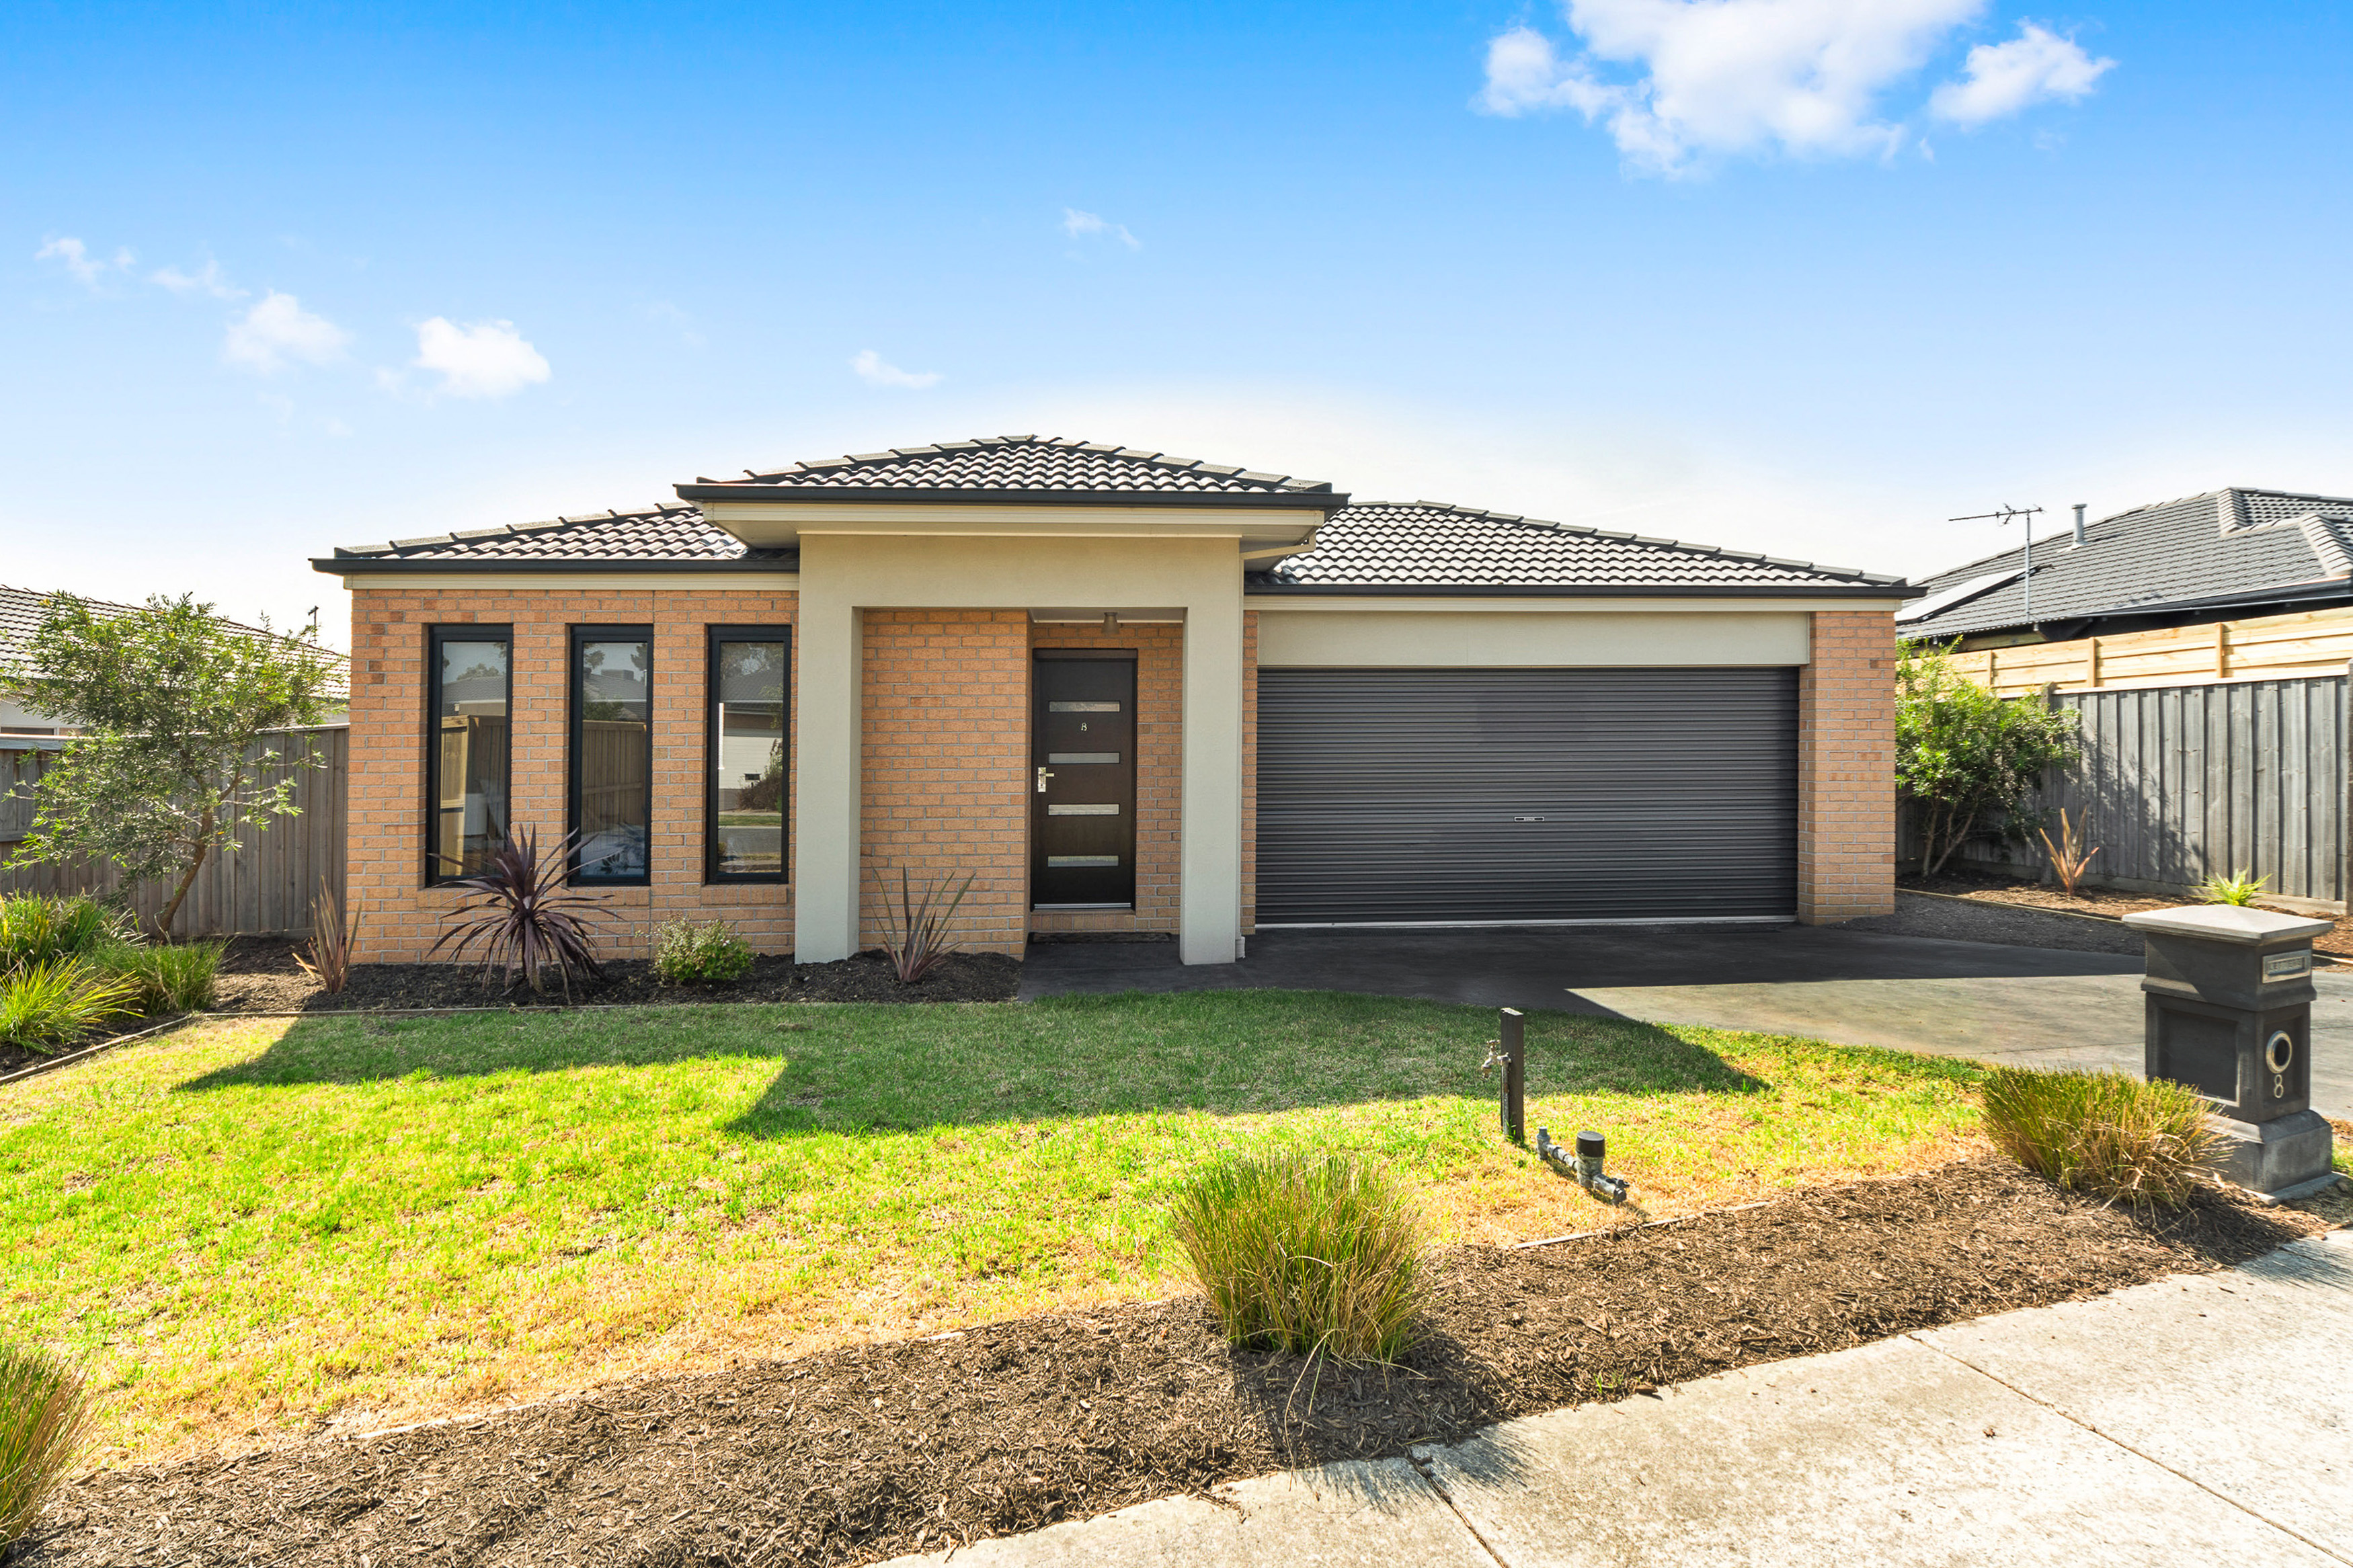 8 Millicent Road, LANGWARRIN, VIC, 3910 - Image